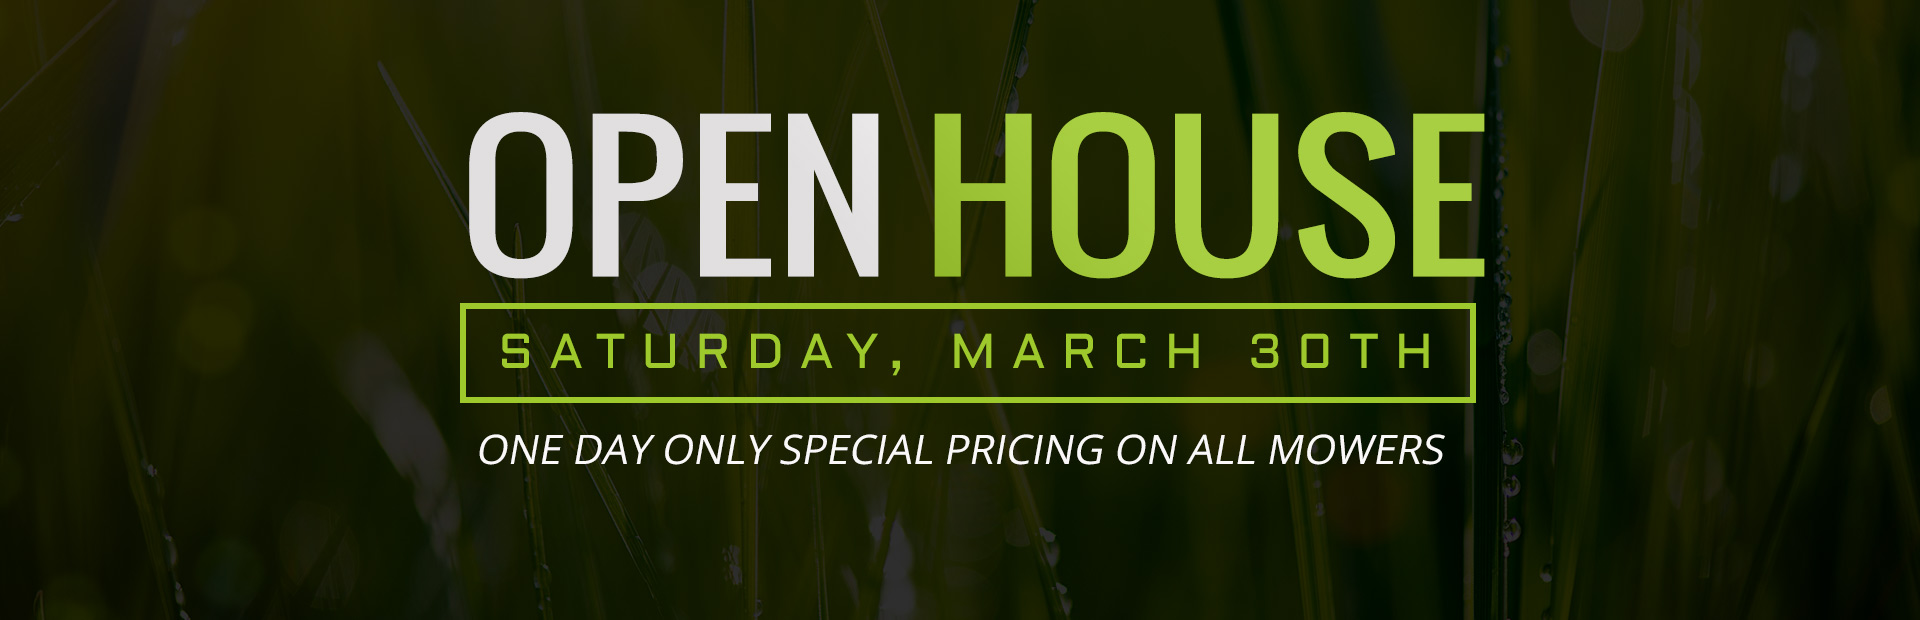 Join us Saturday, March 30th for our Open House!